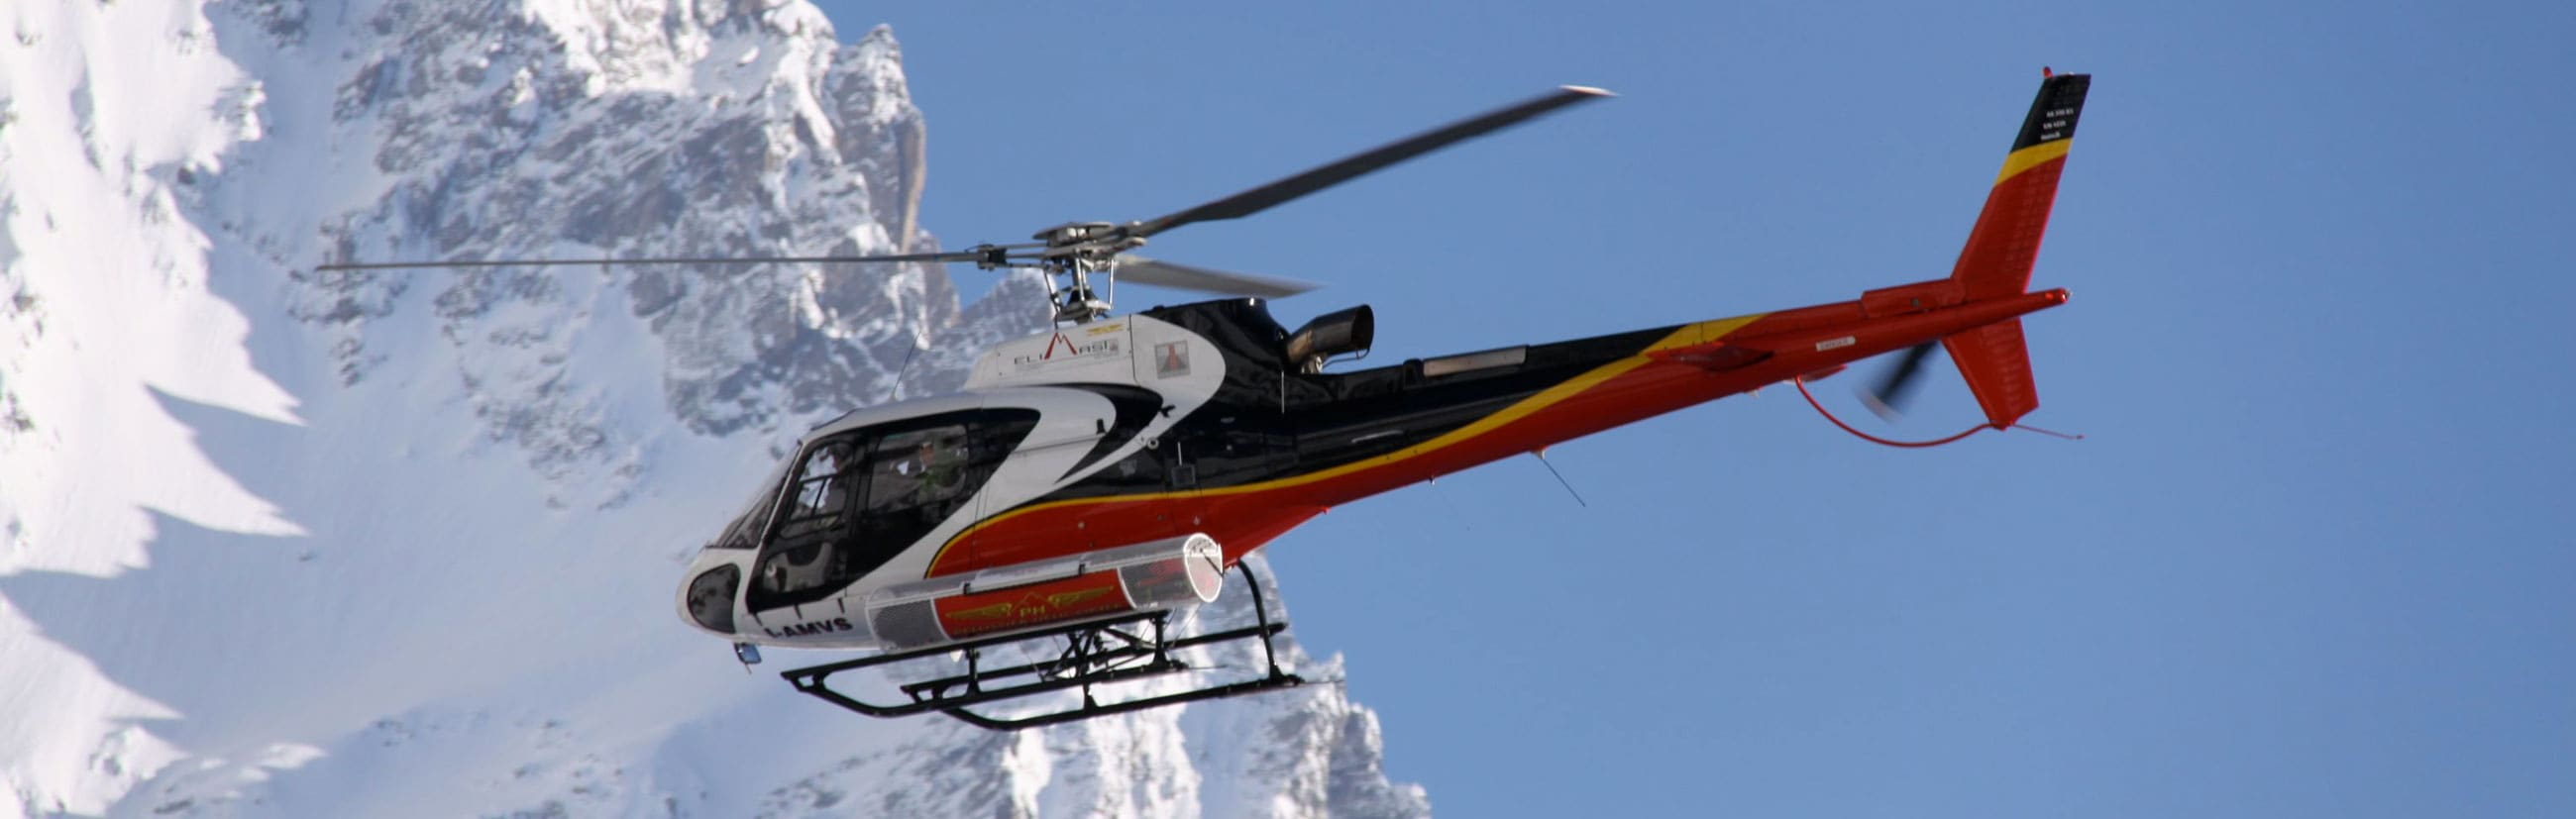 Helicopter for Hiking in the Alps